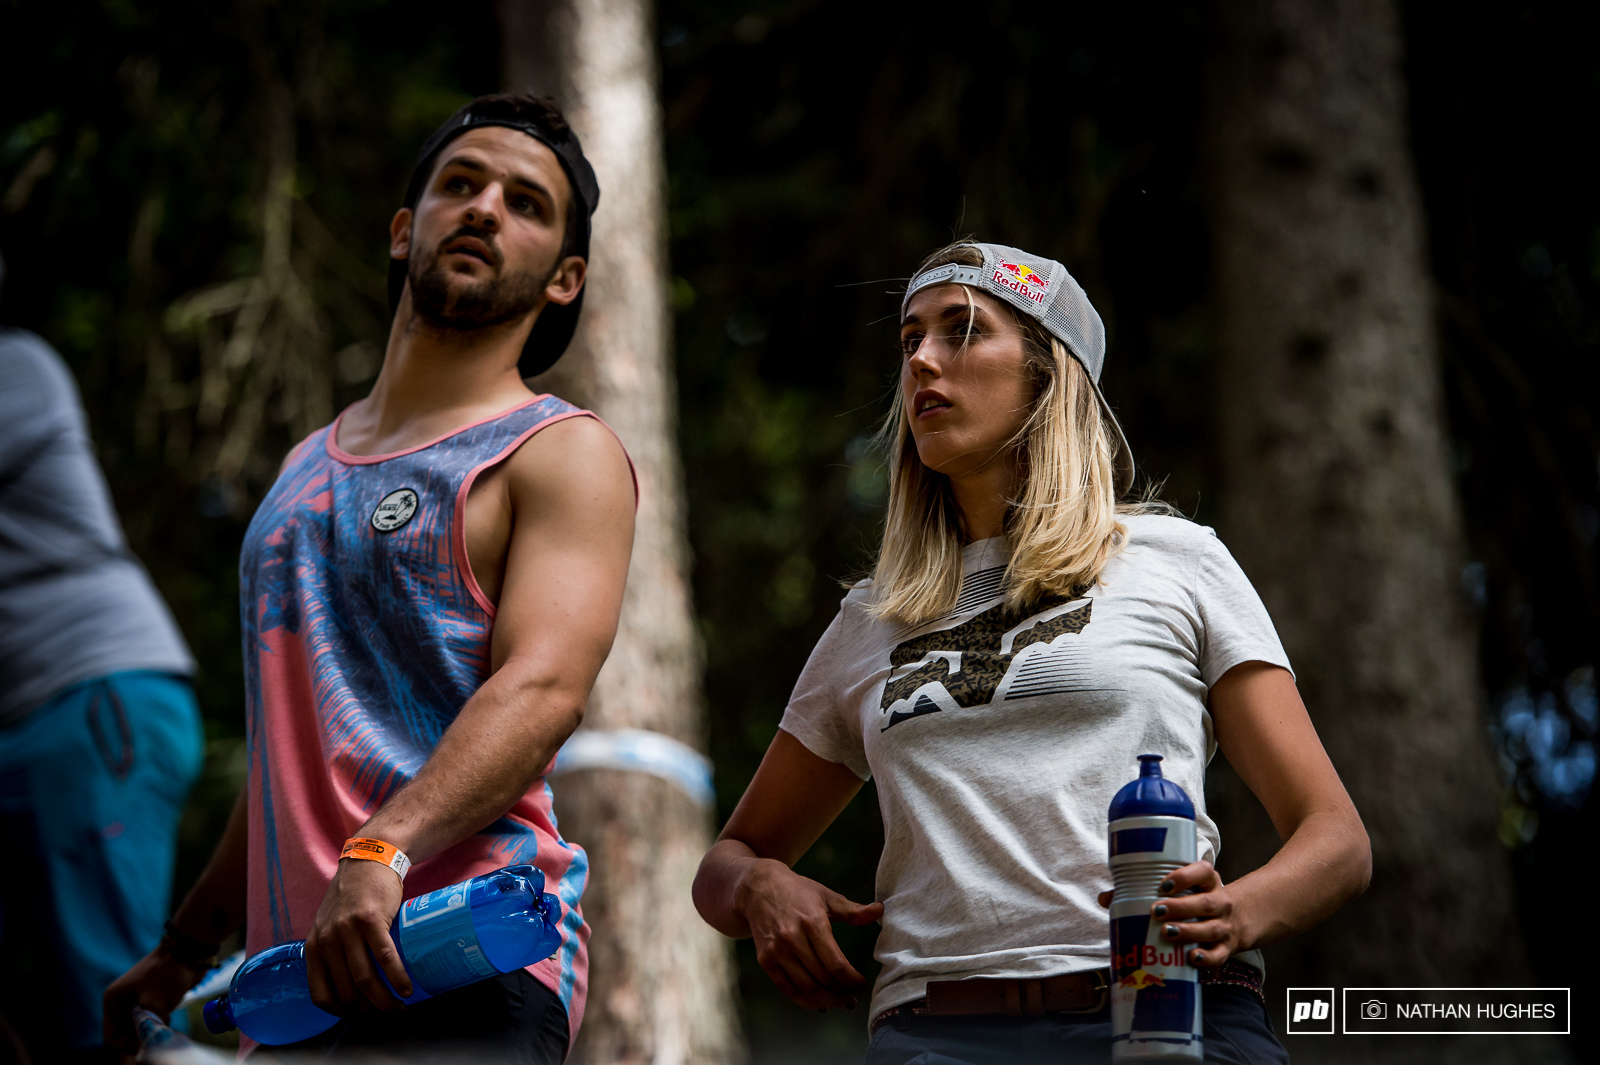 Myriam Nicole and Gaetan Ruffin share their line knowledge in the upper woods while watching the TT. Great to see Pompon back in the mix